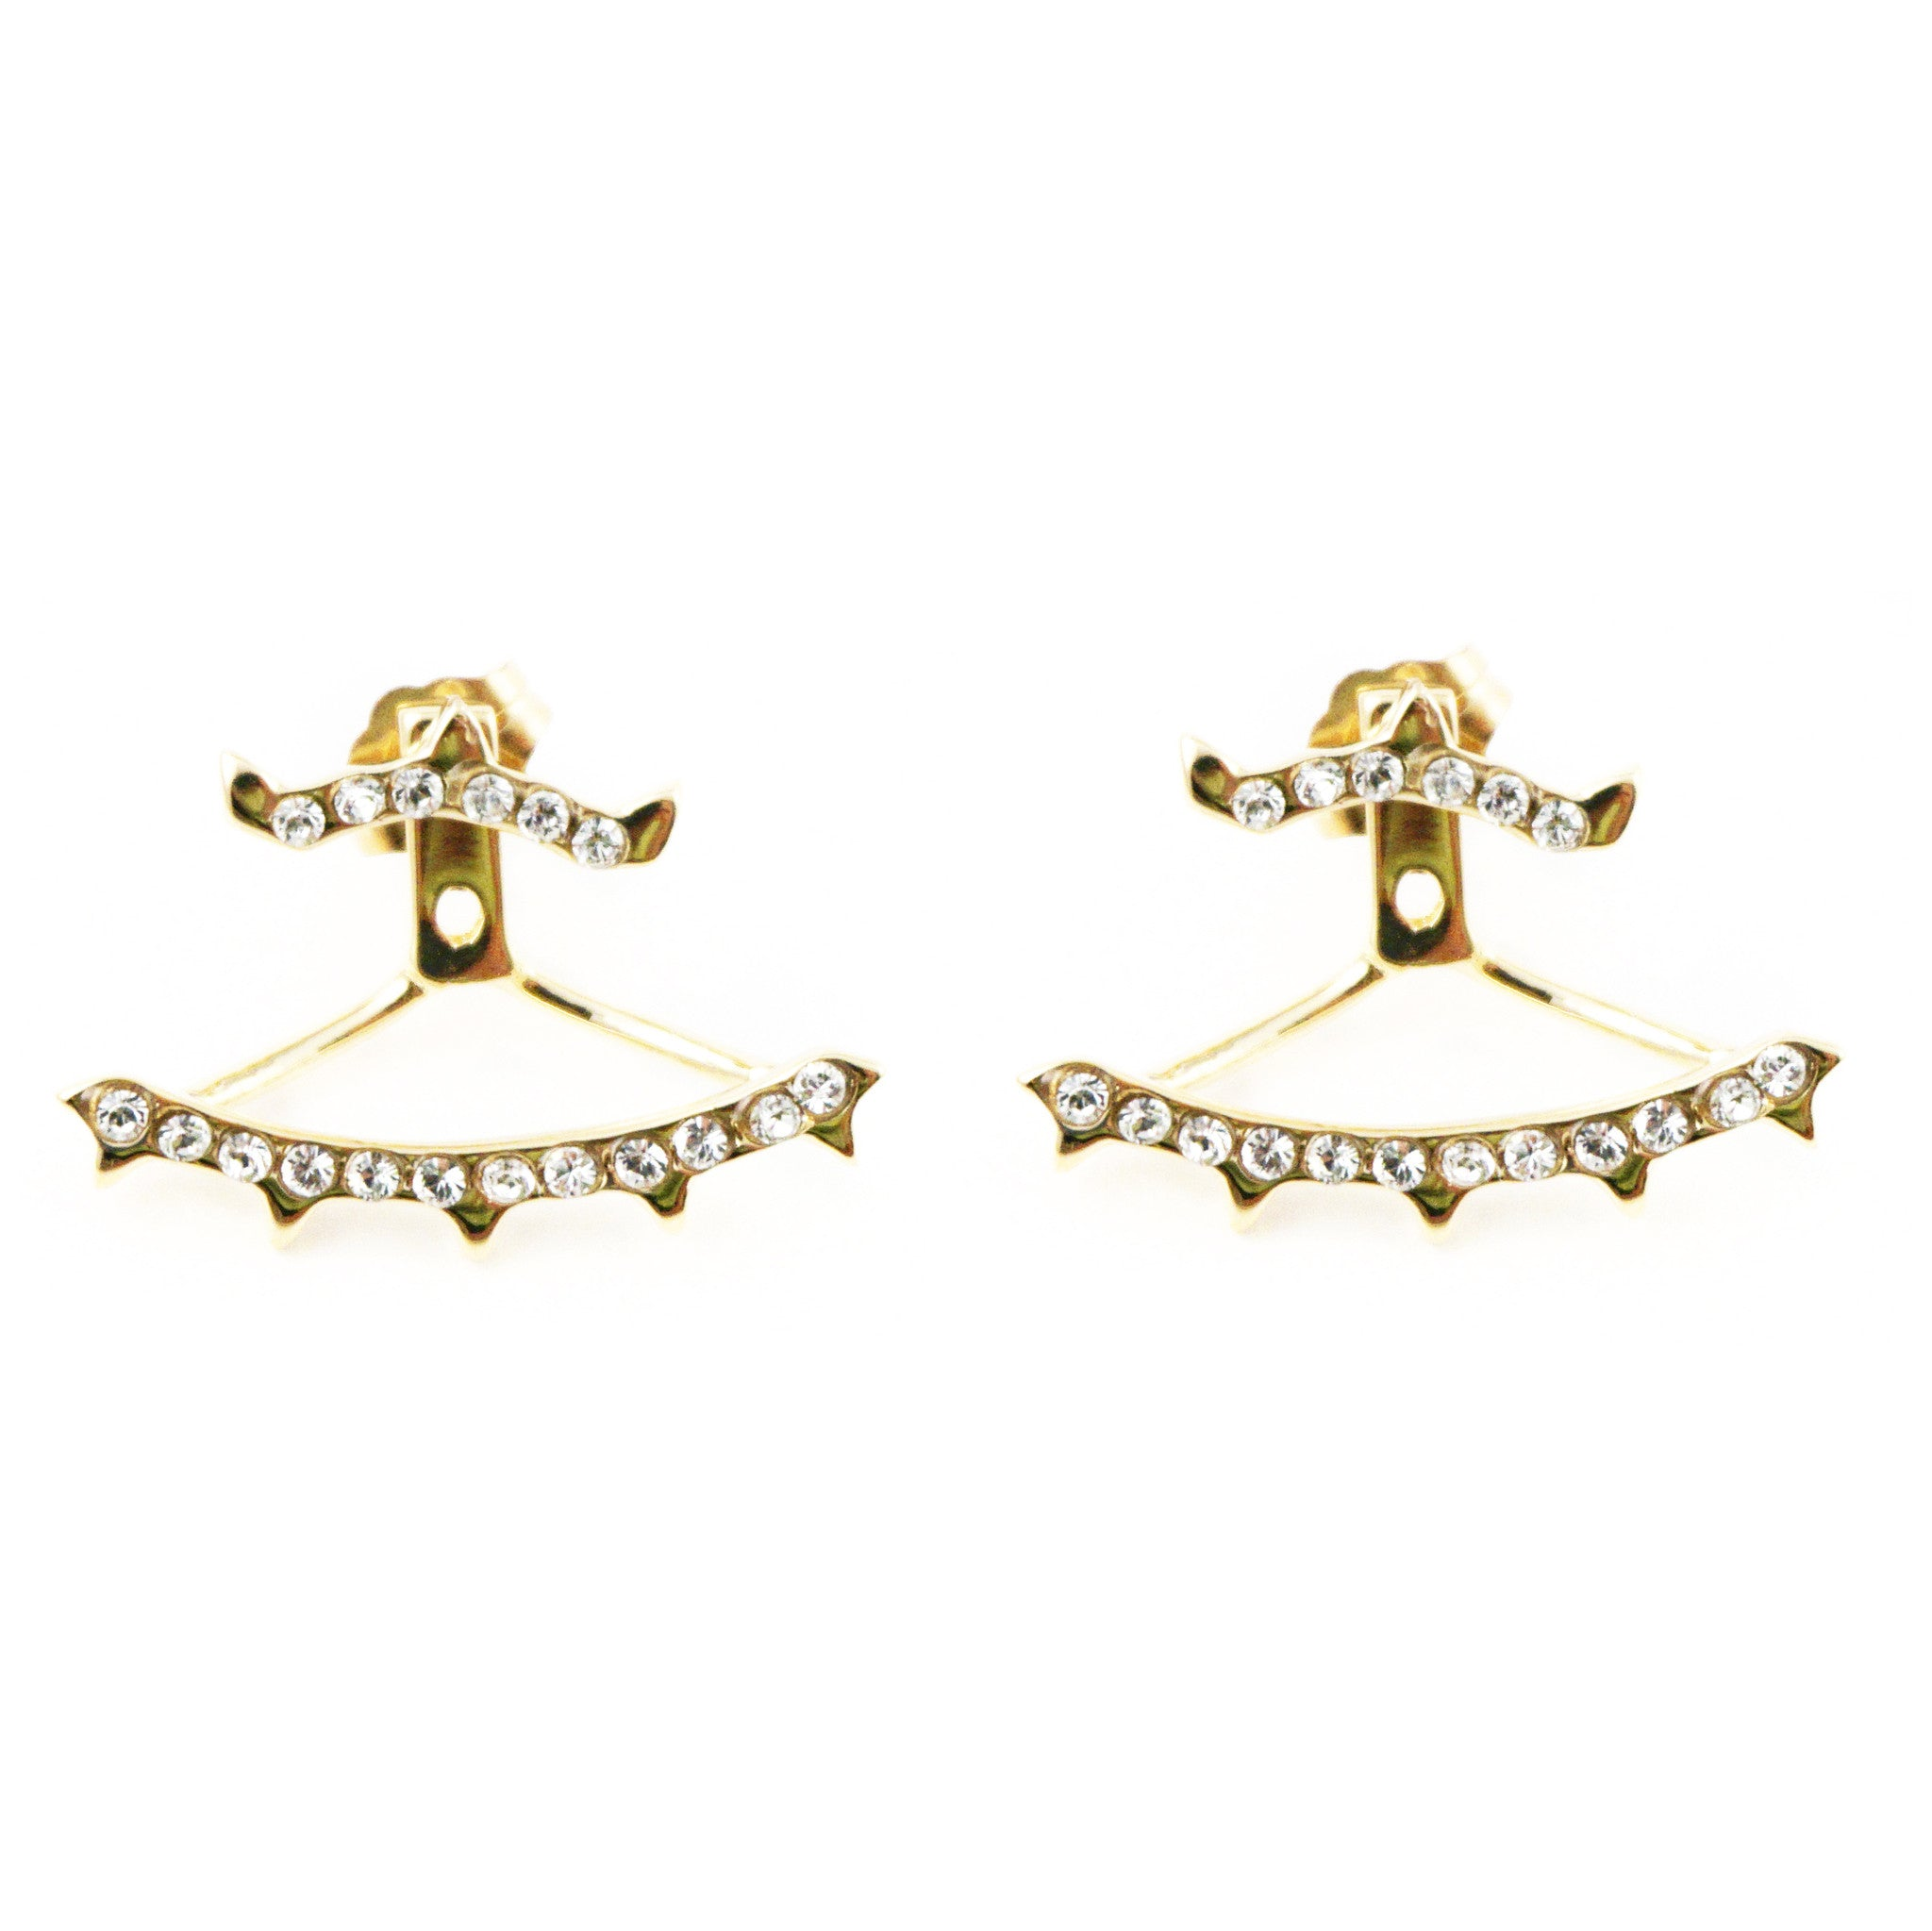 CAROLYN COLBY - GOLD CRYSTAL MINI SPIKE EAR JACKETS